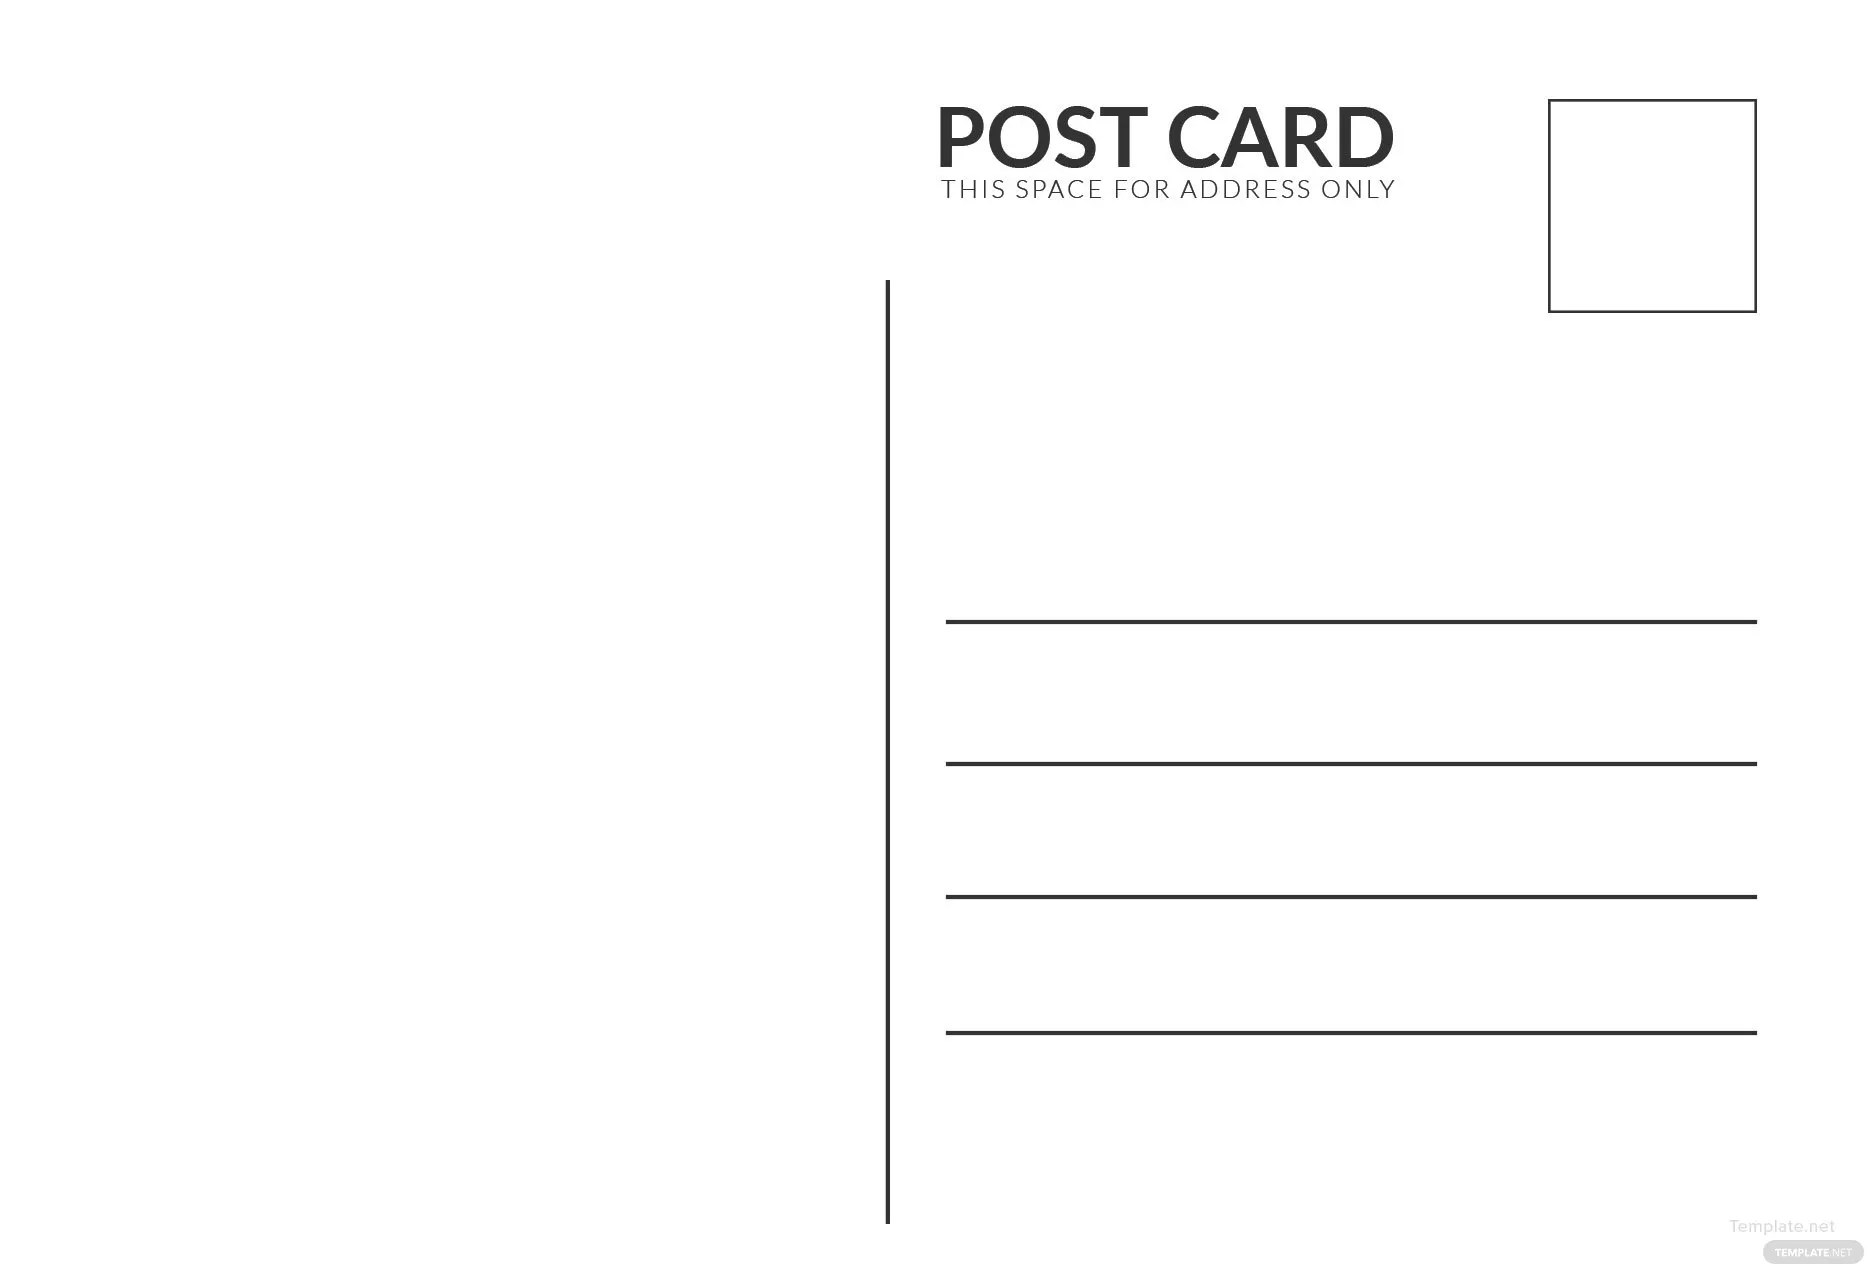 Blank White Index Postcard Template In Adobe Photoshop